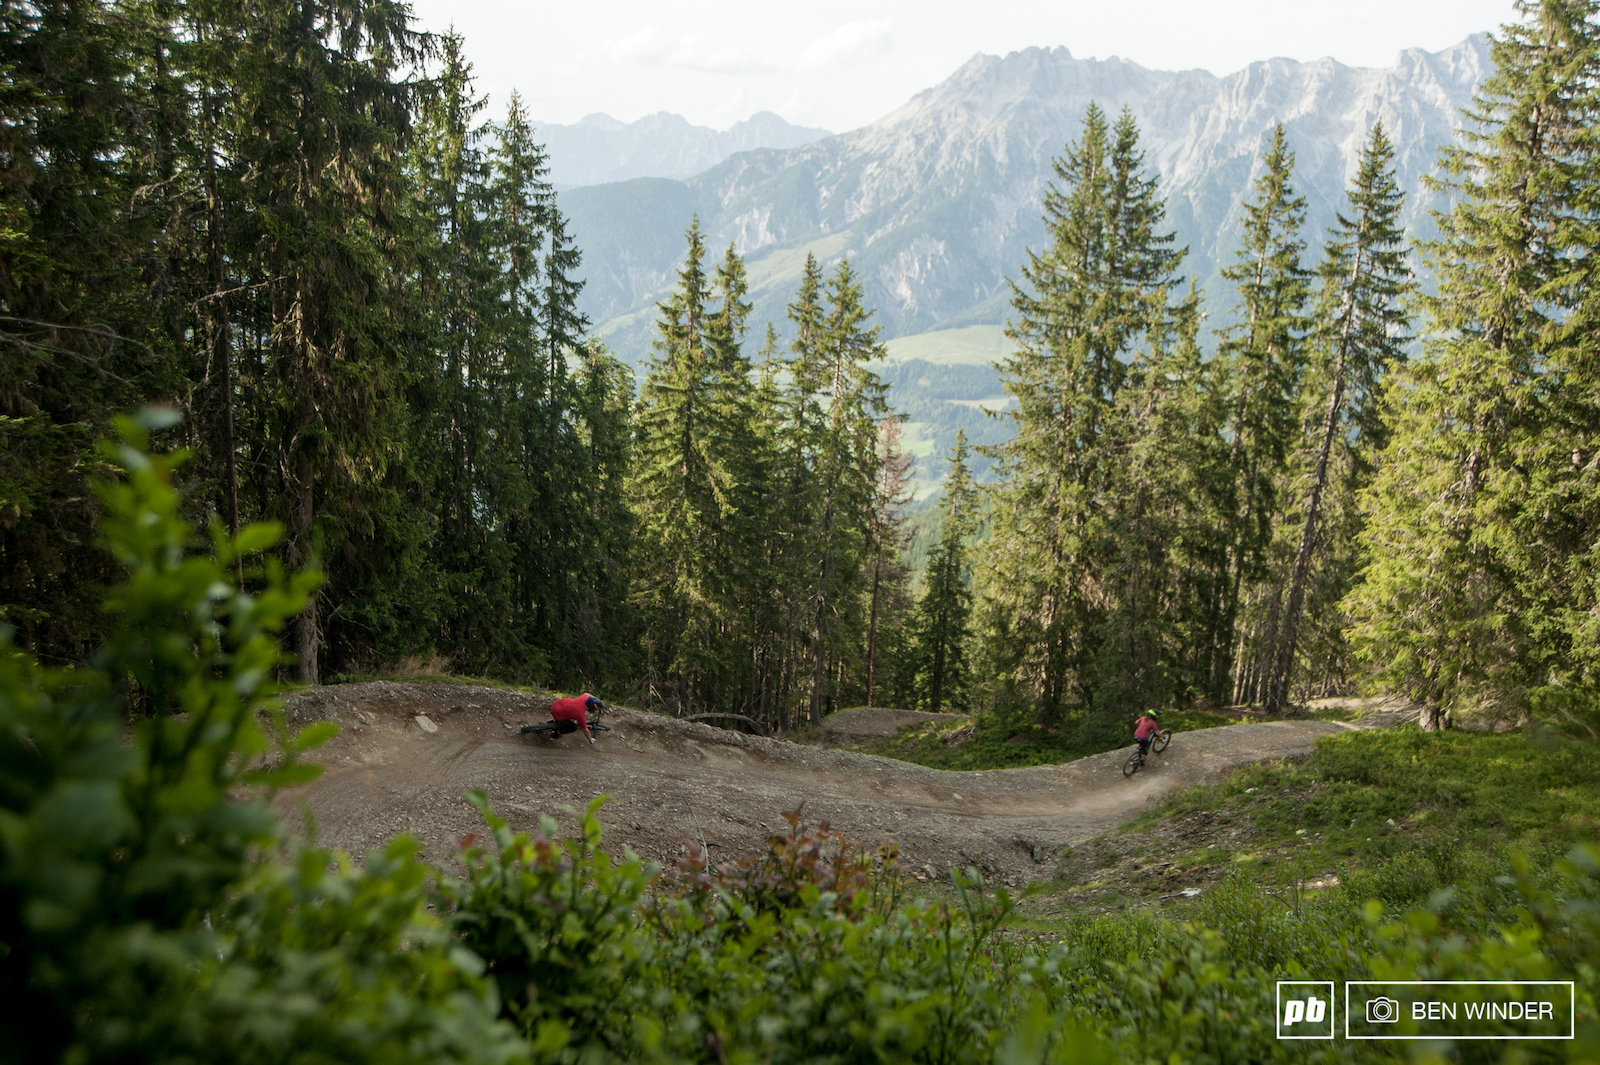 Berms and jumps. Quite a common theme at Leogang. While easy enough for most levels it s still a lot of fun for more experienced riders.